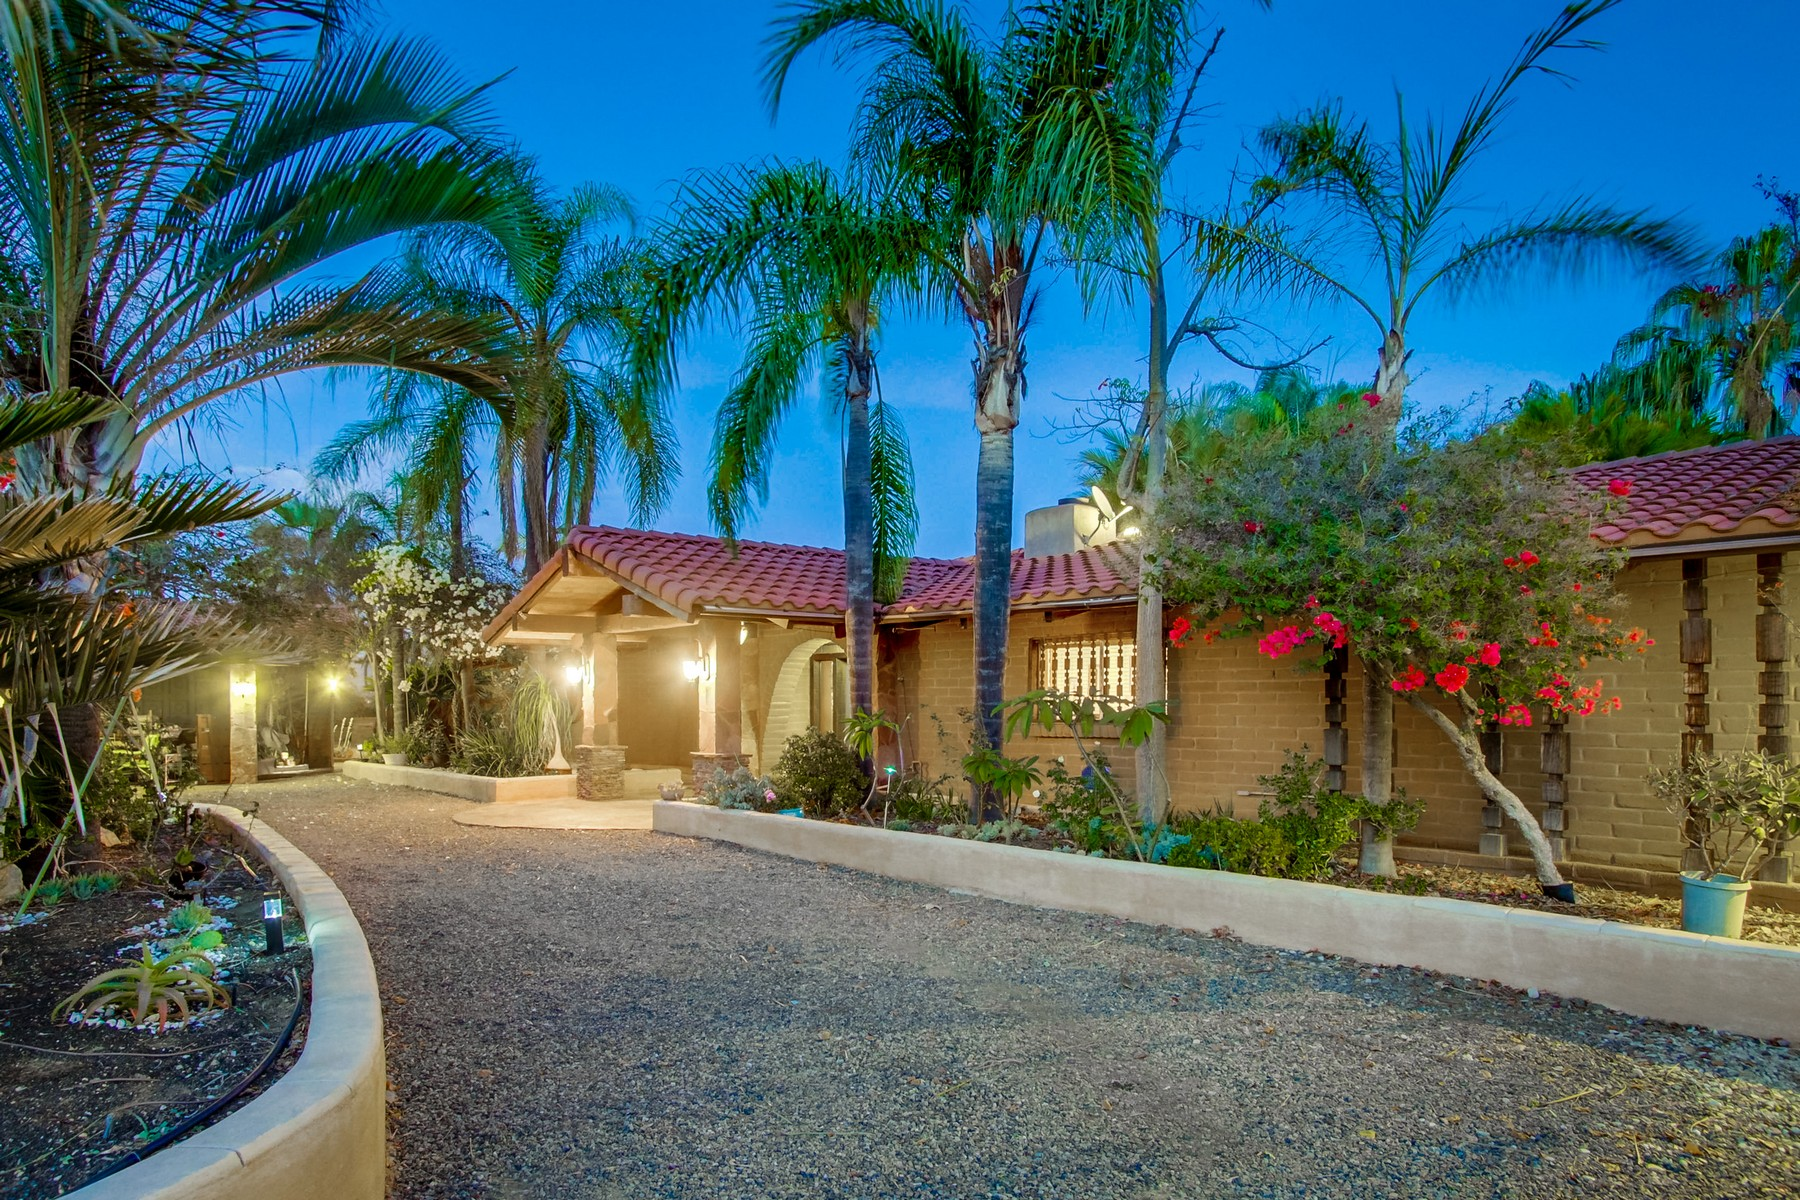 Single Family Home for Active at 2860 Sunset Hills 2860 Sunset Hills Escondido, California 92025 United States